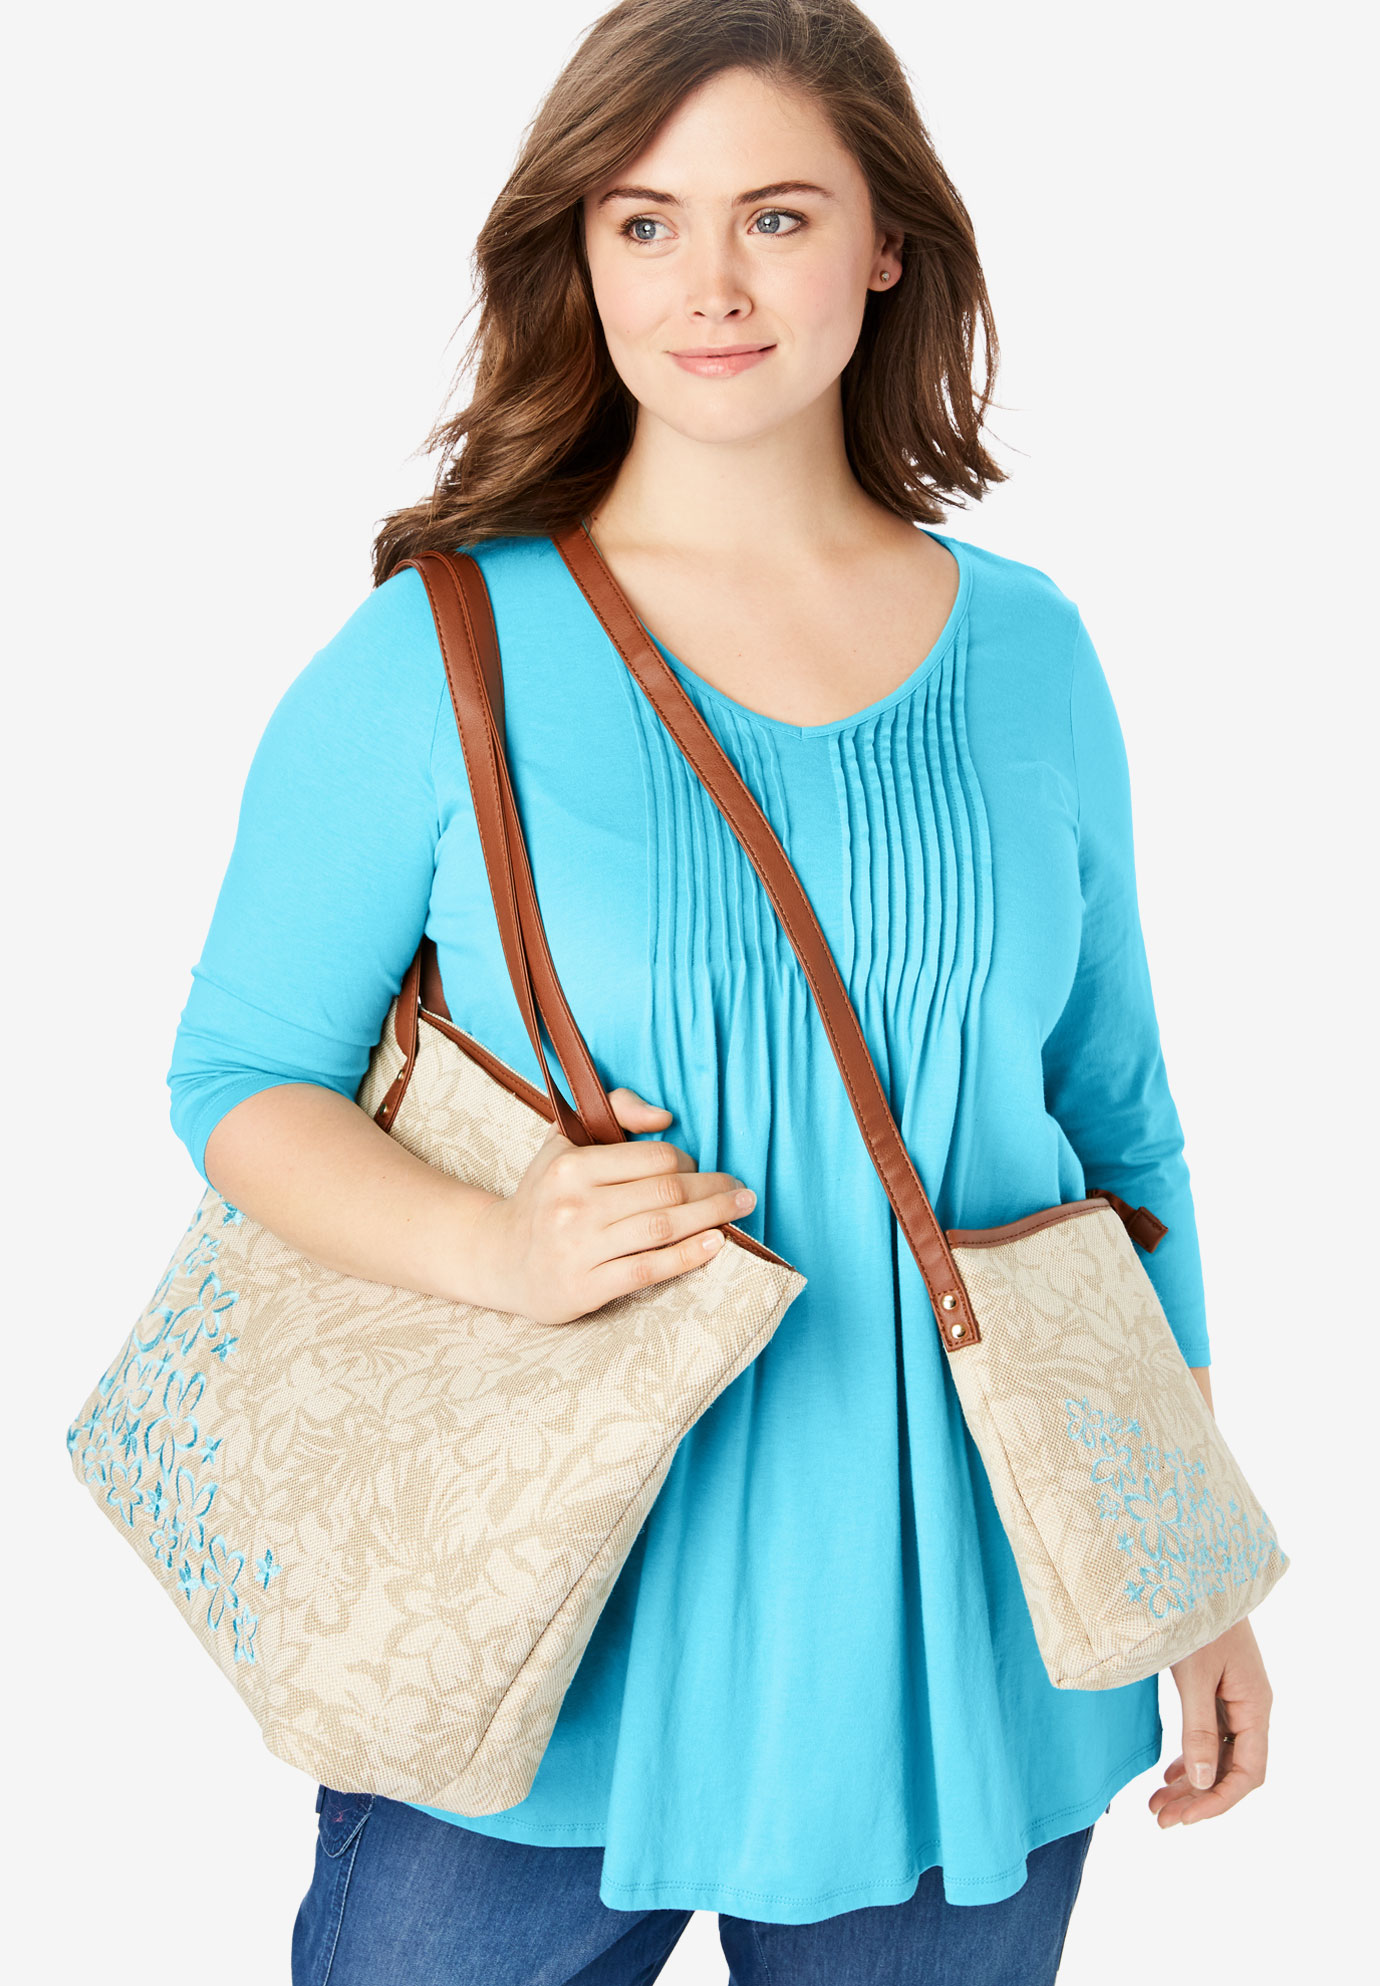 2-Piece Floral Tote Set, CARIBBEAN BLUE HIBISCUS EMBROIDERY